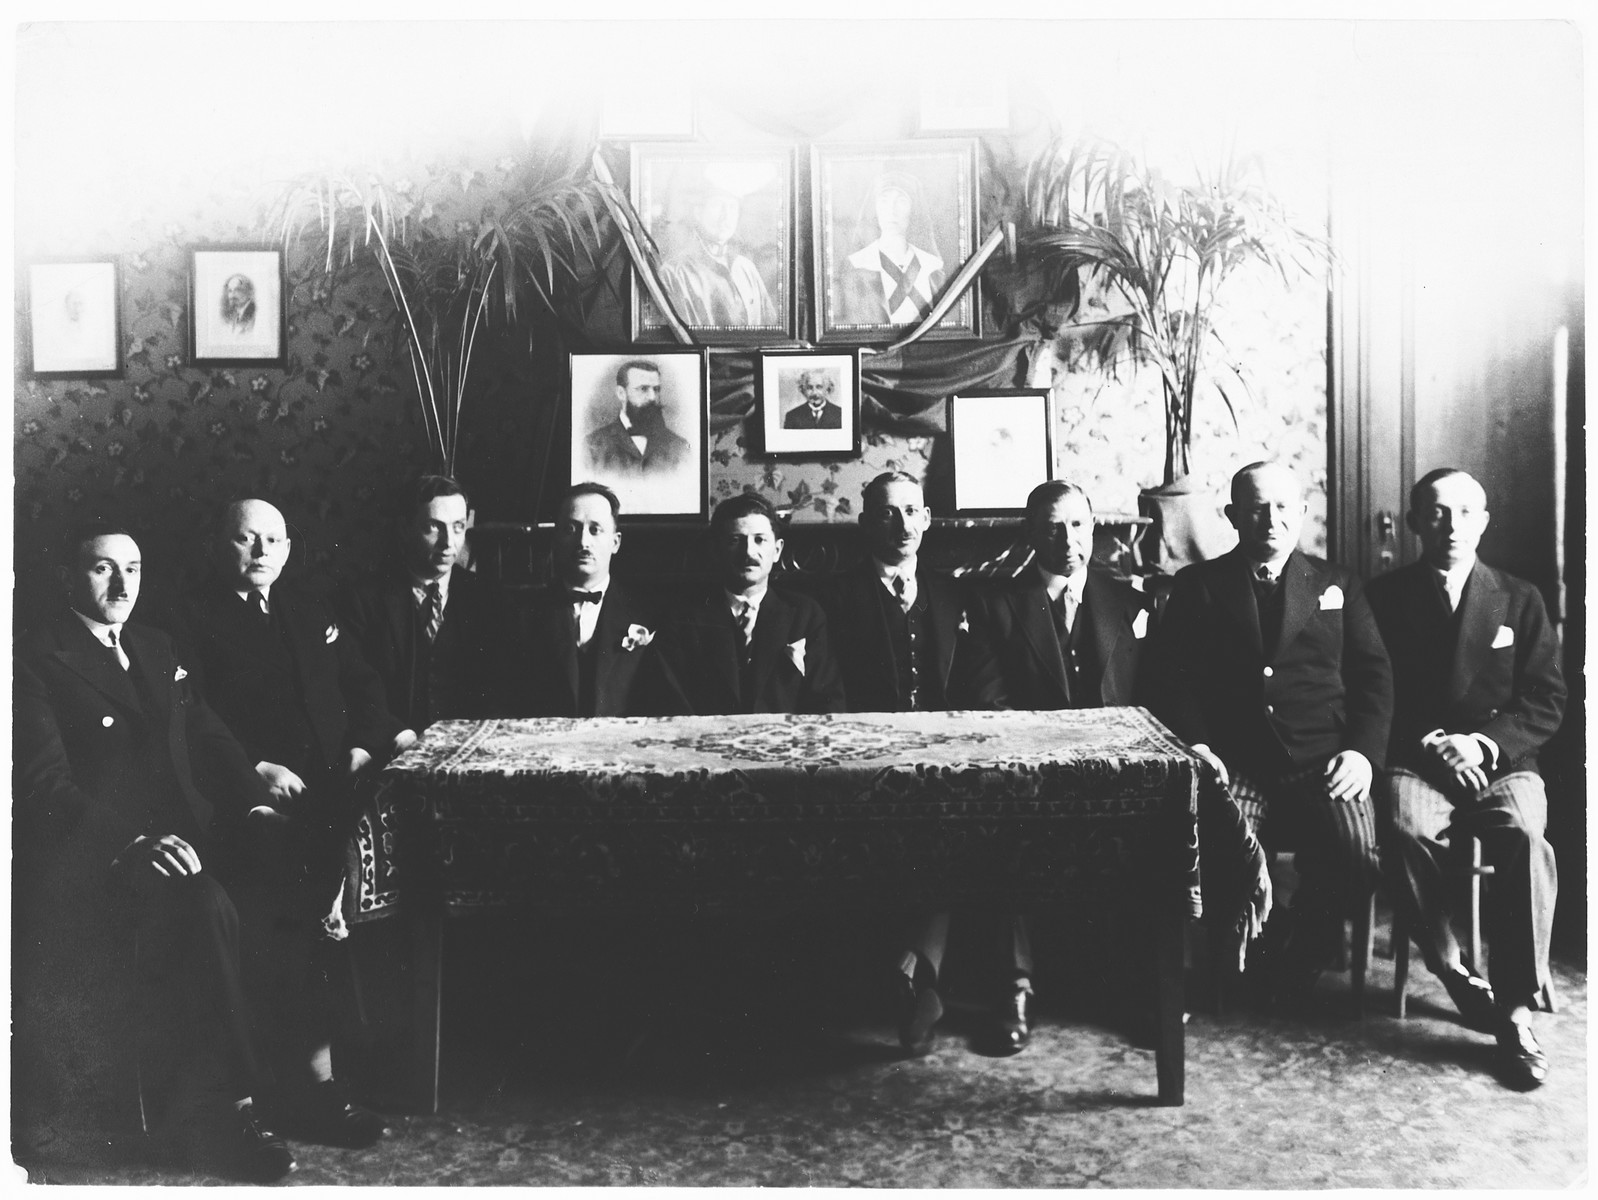 Group portrait of members of the ftraternal organizatgion of Jews from Lodz  in Antwerp, Belgium.  Among thos pictured is Emmanuel Rubinstein, on far left.  Hanging on the wall are portraits of the King and Queen, Theodore Herzl and Albert Einstein.